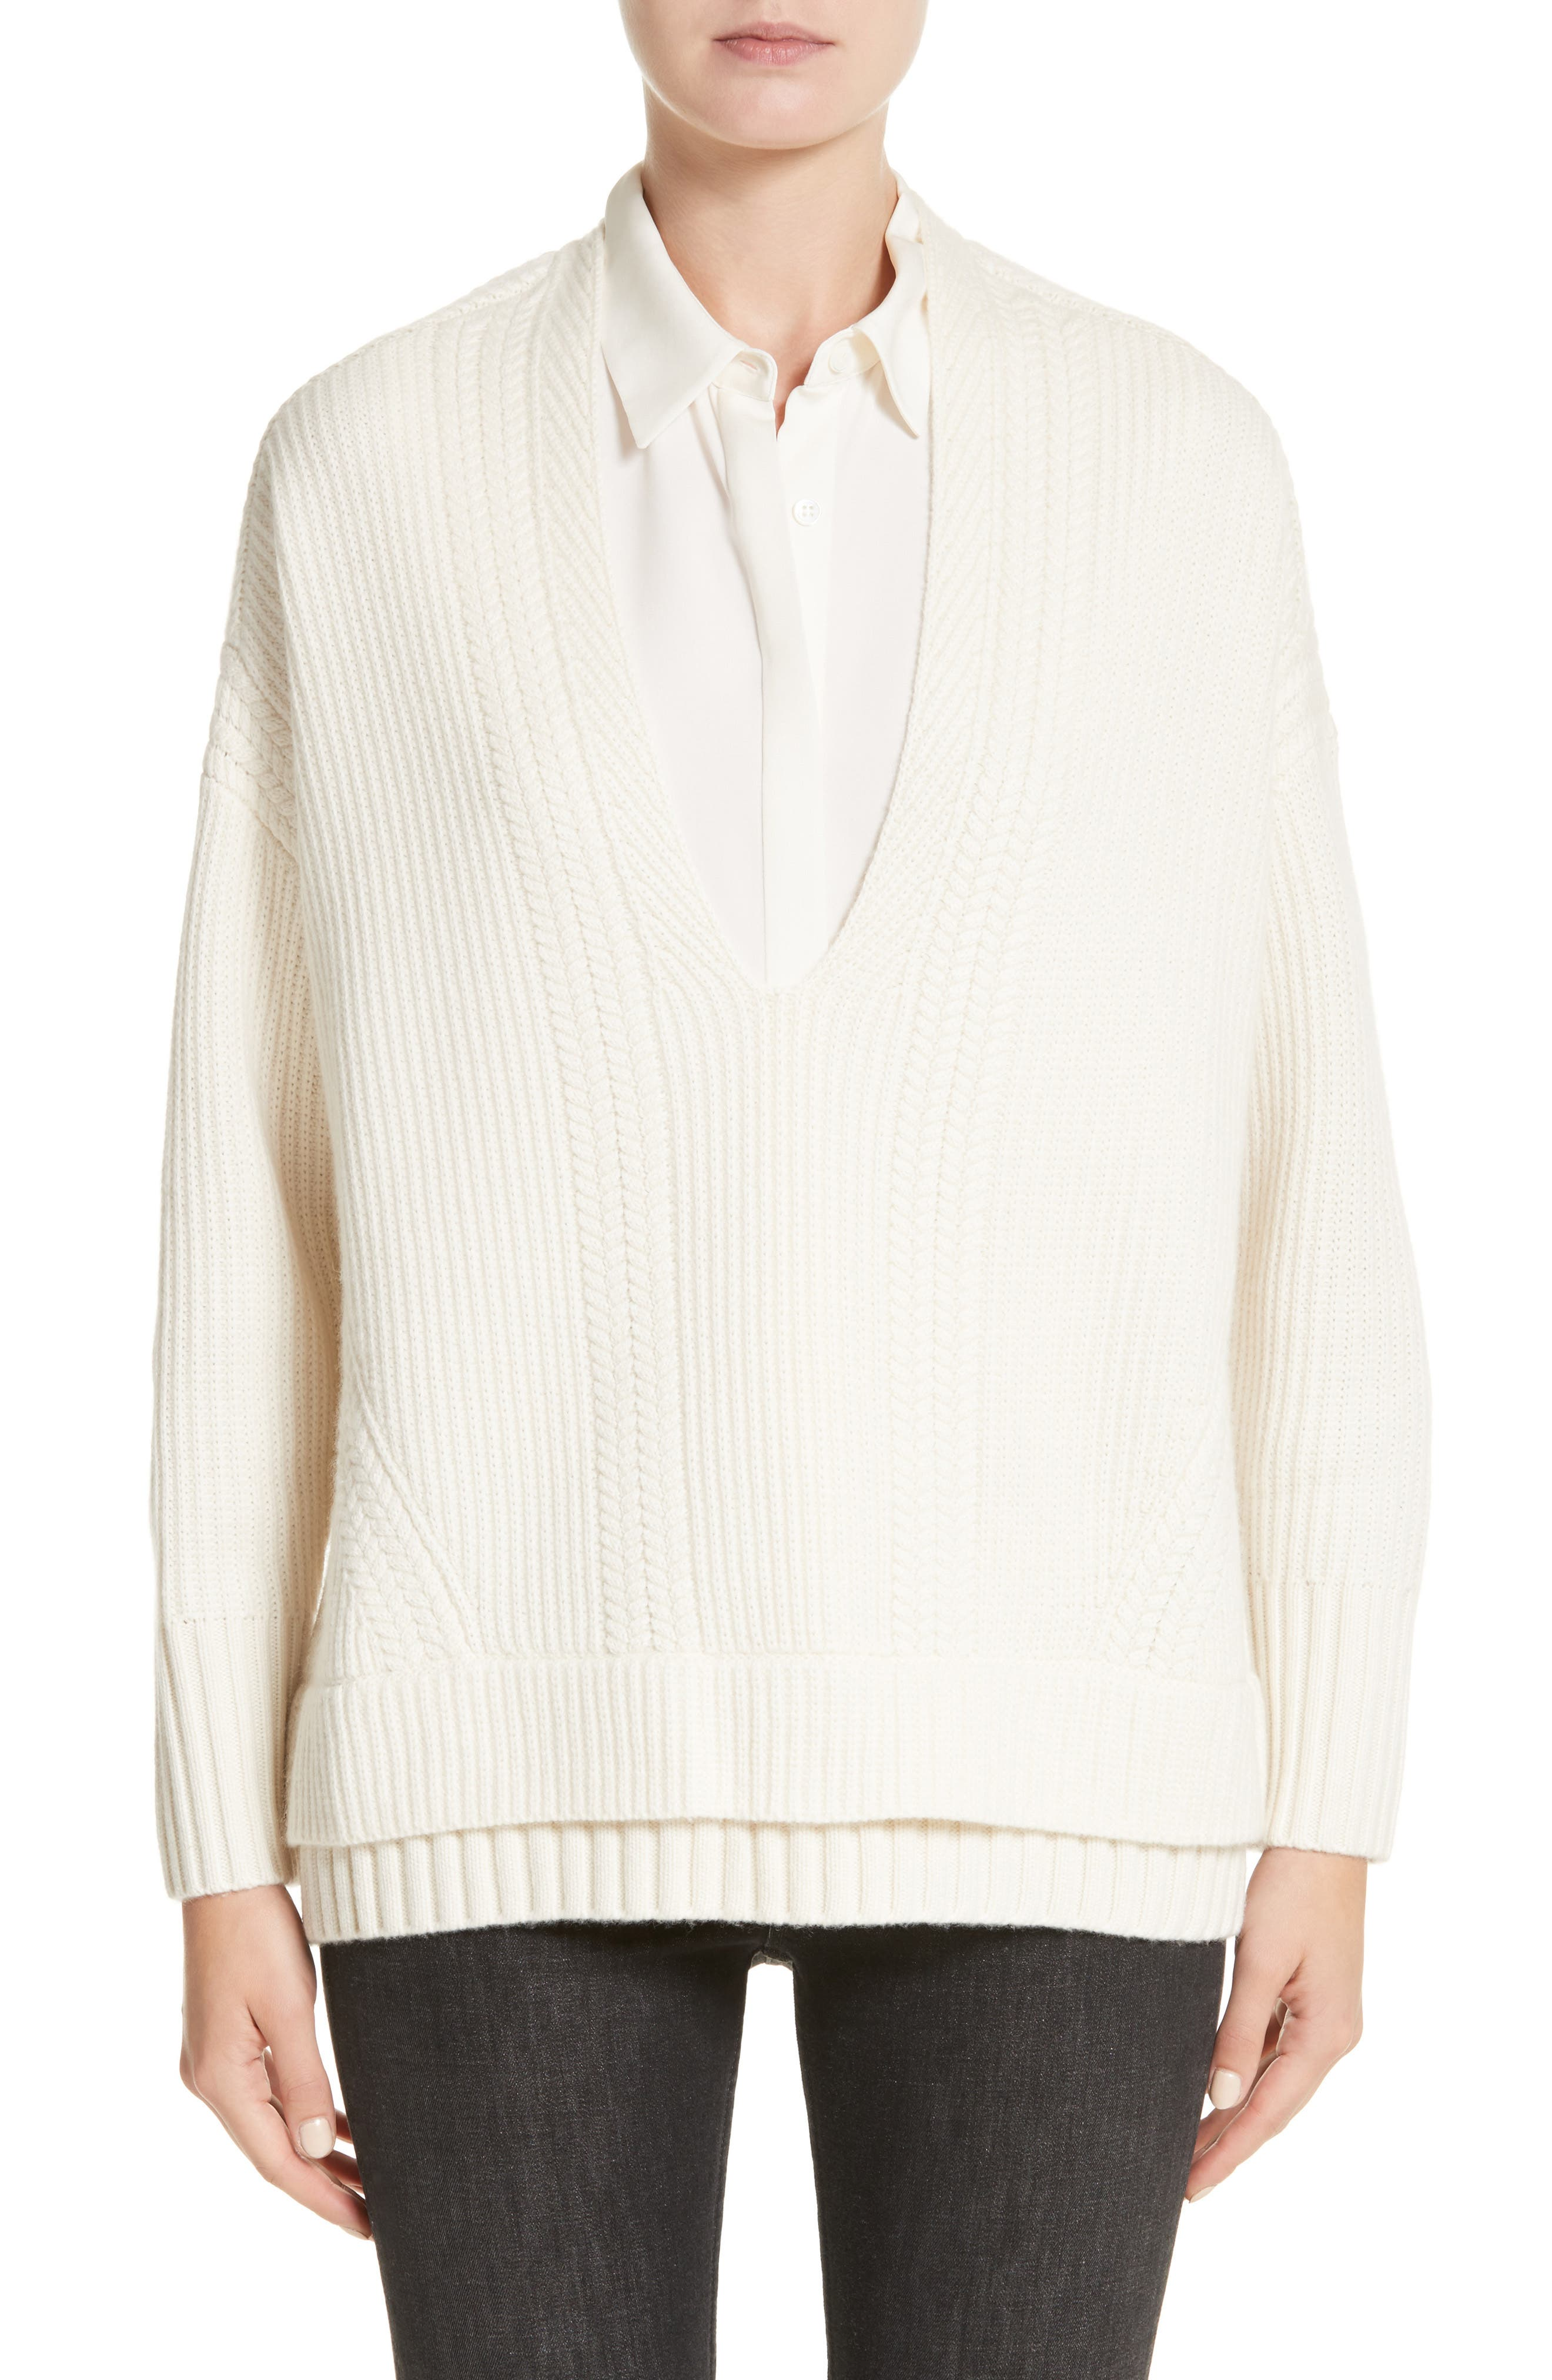 Santerno Wool & Cashmere Cable Knit Sweater,                         Main,                         color, Natural White